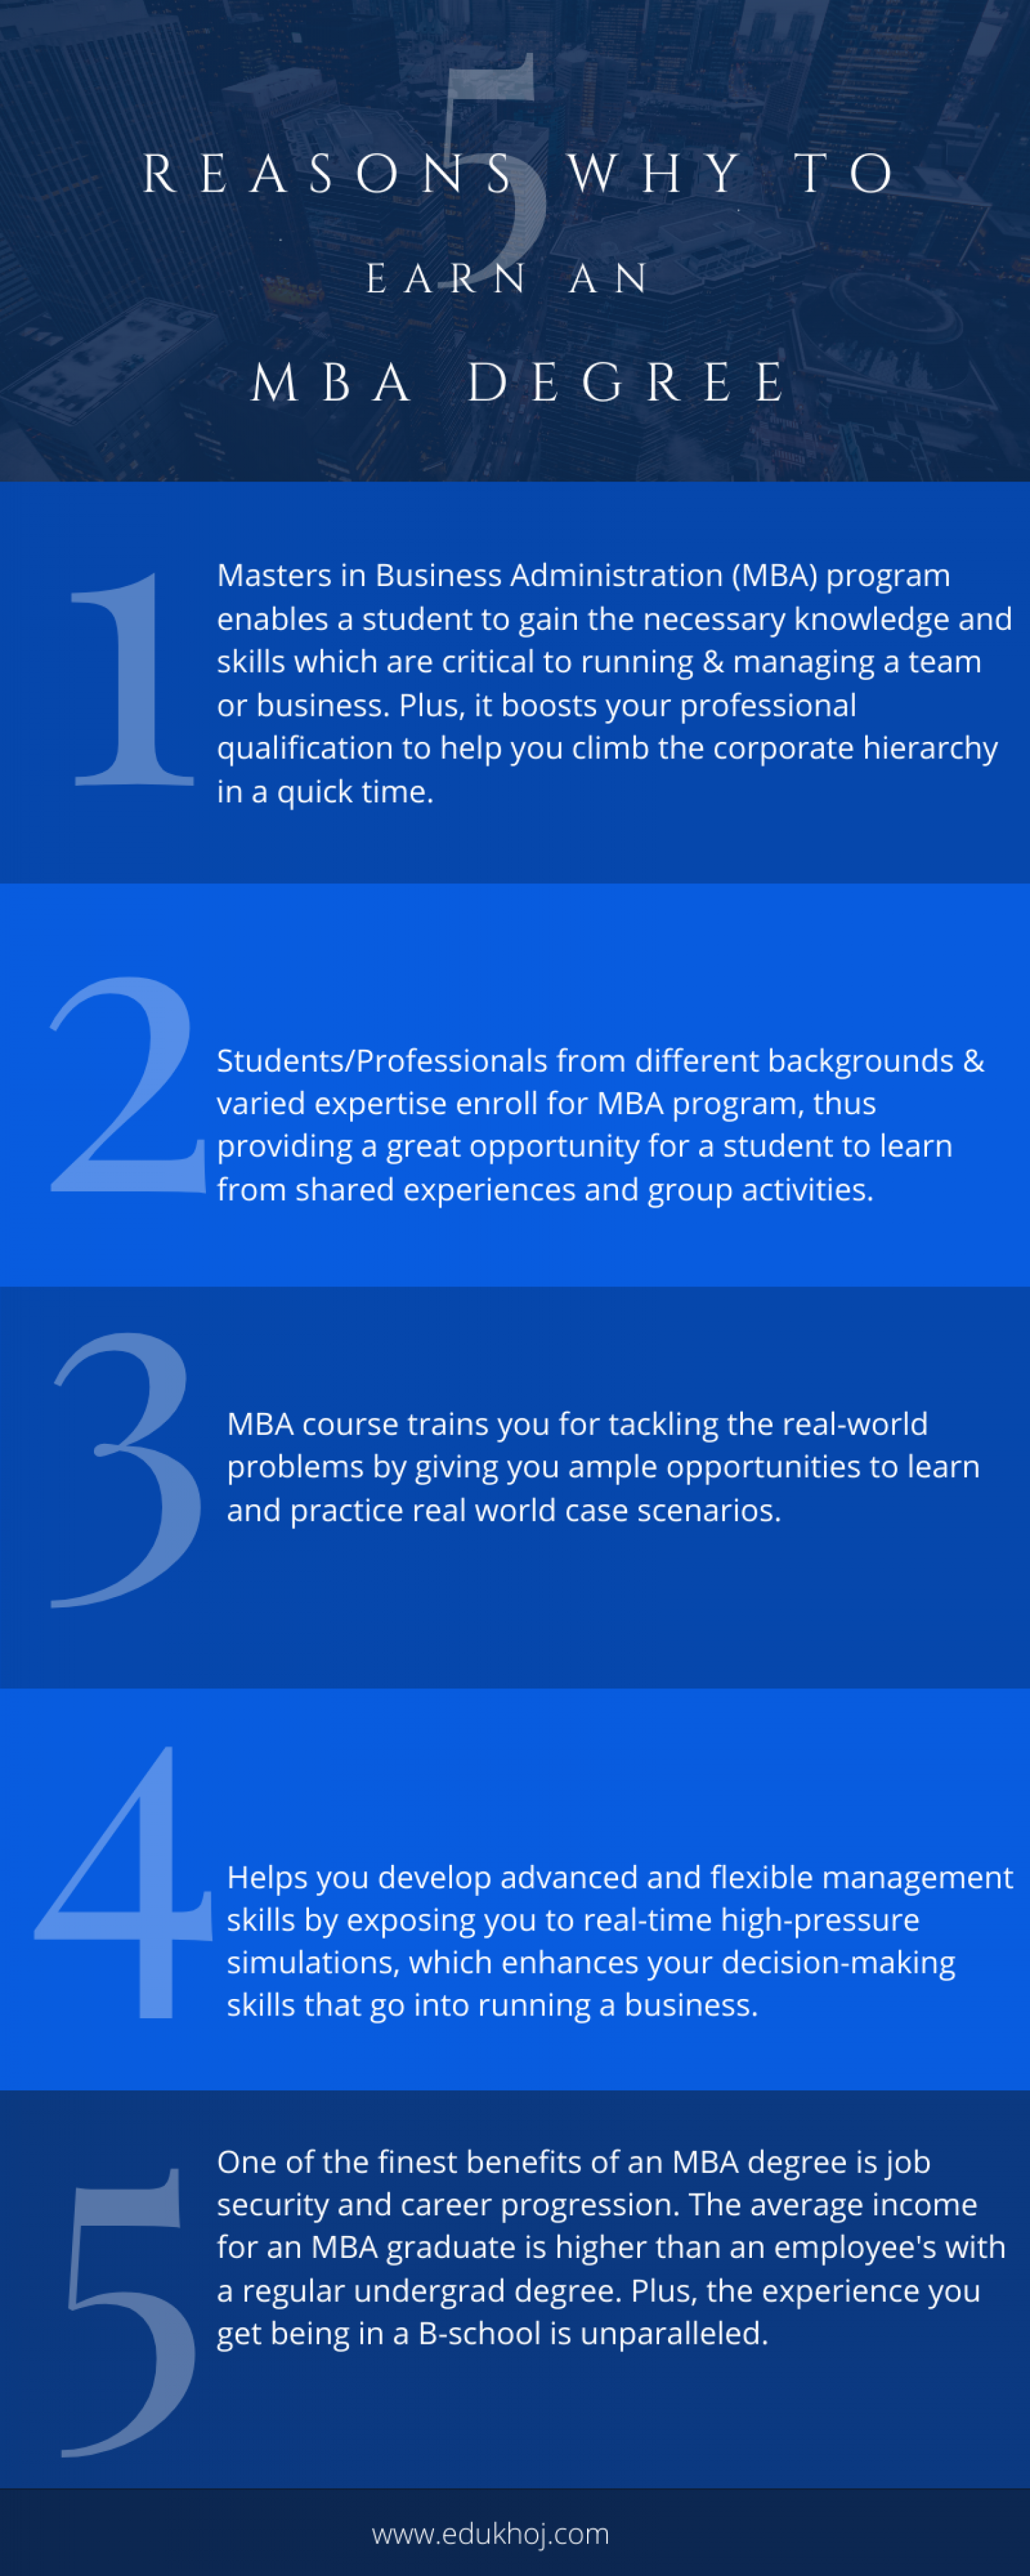 5 Reasons Why to Earn an MBA Degree Infographic